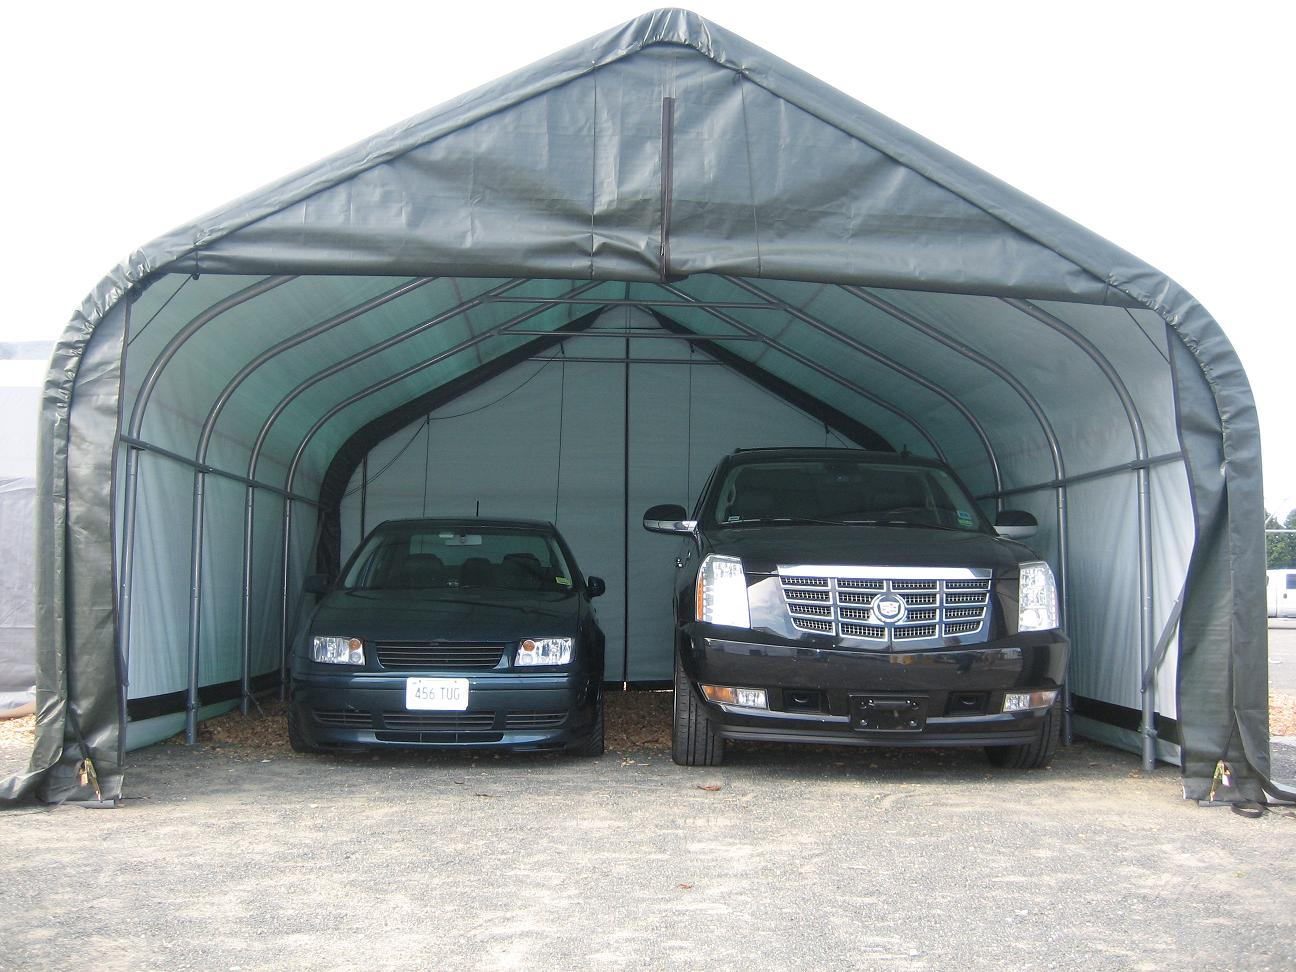 make shelter hiscoshelters lasting gallery kits heavy your diy own carport portable photo com shield all tarp garage weather temporary logic long pin